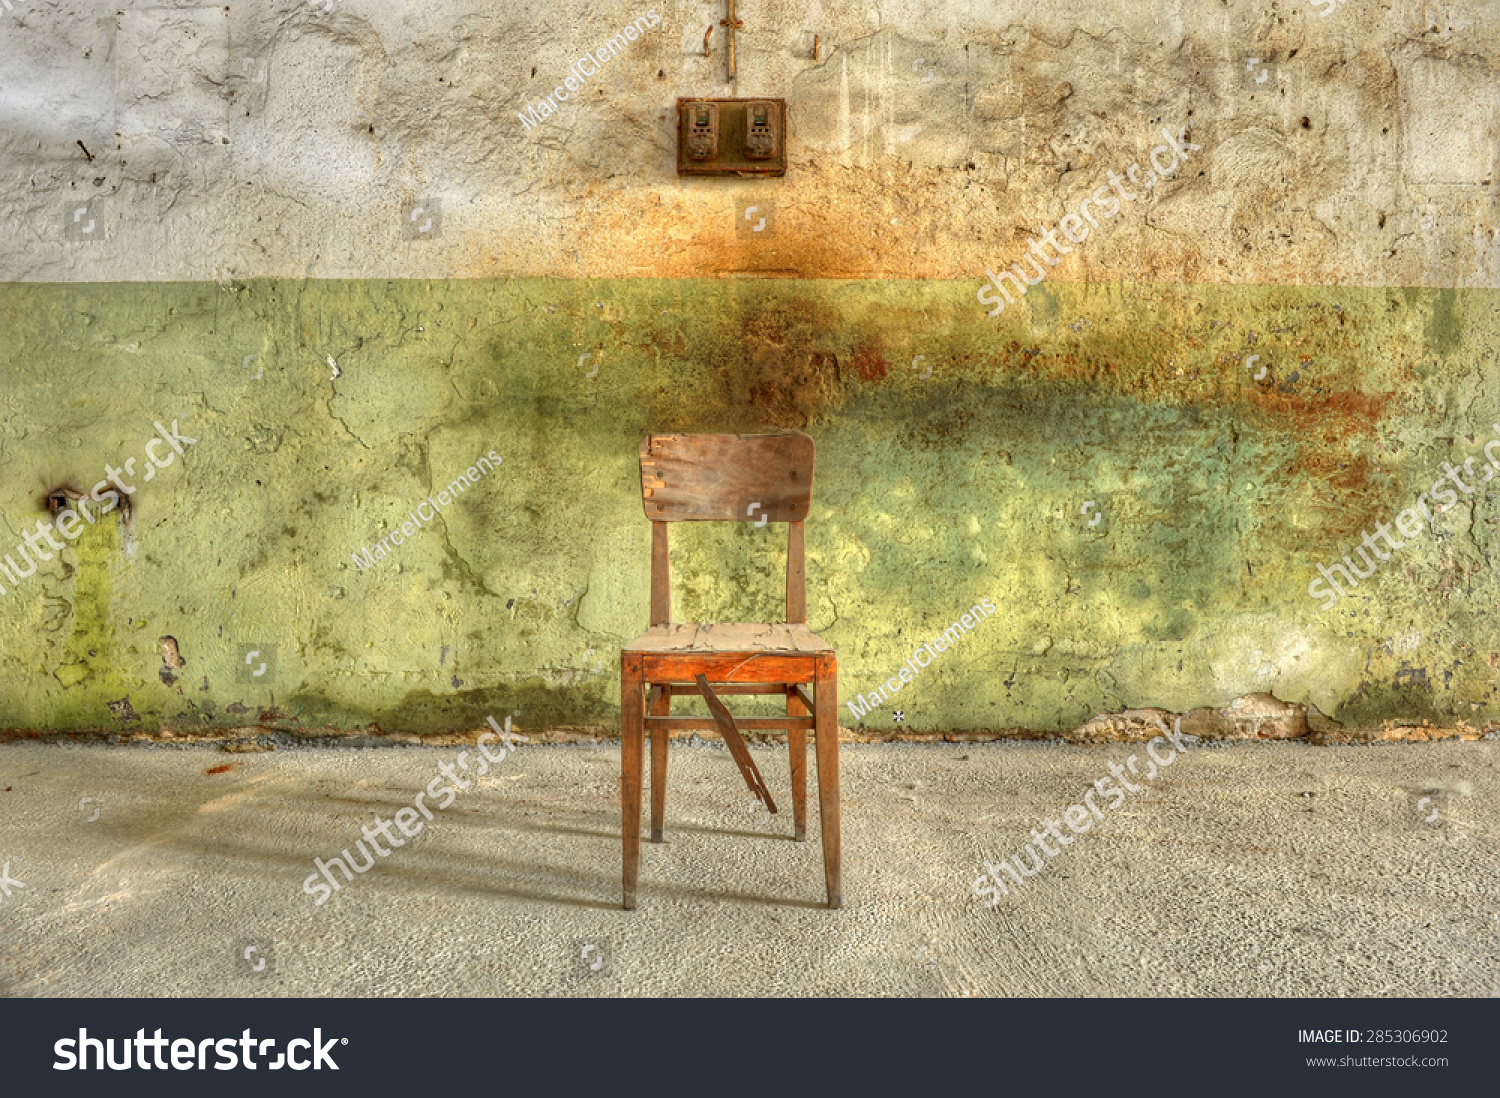 Old Broken Wooden Chair Against A Filthy Wall In An Abandoned Prison Ready